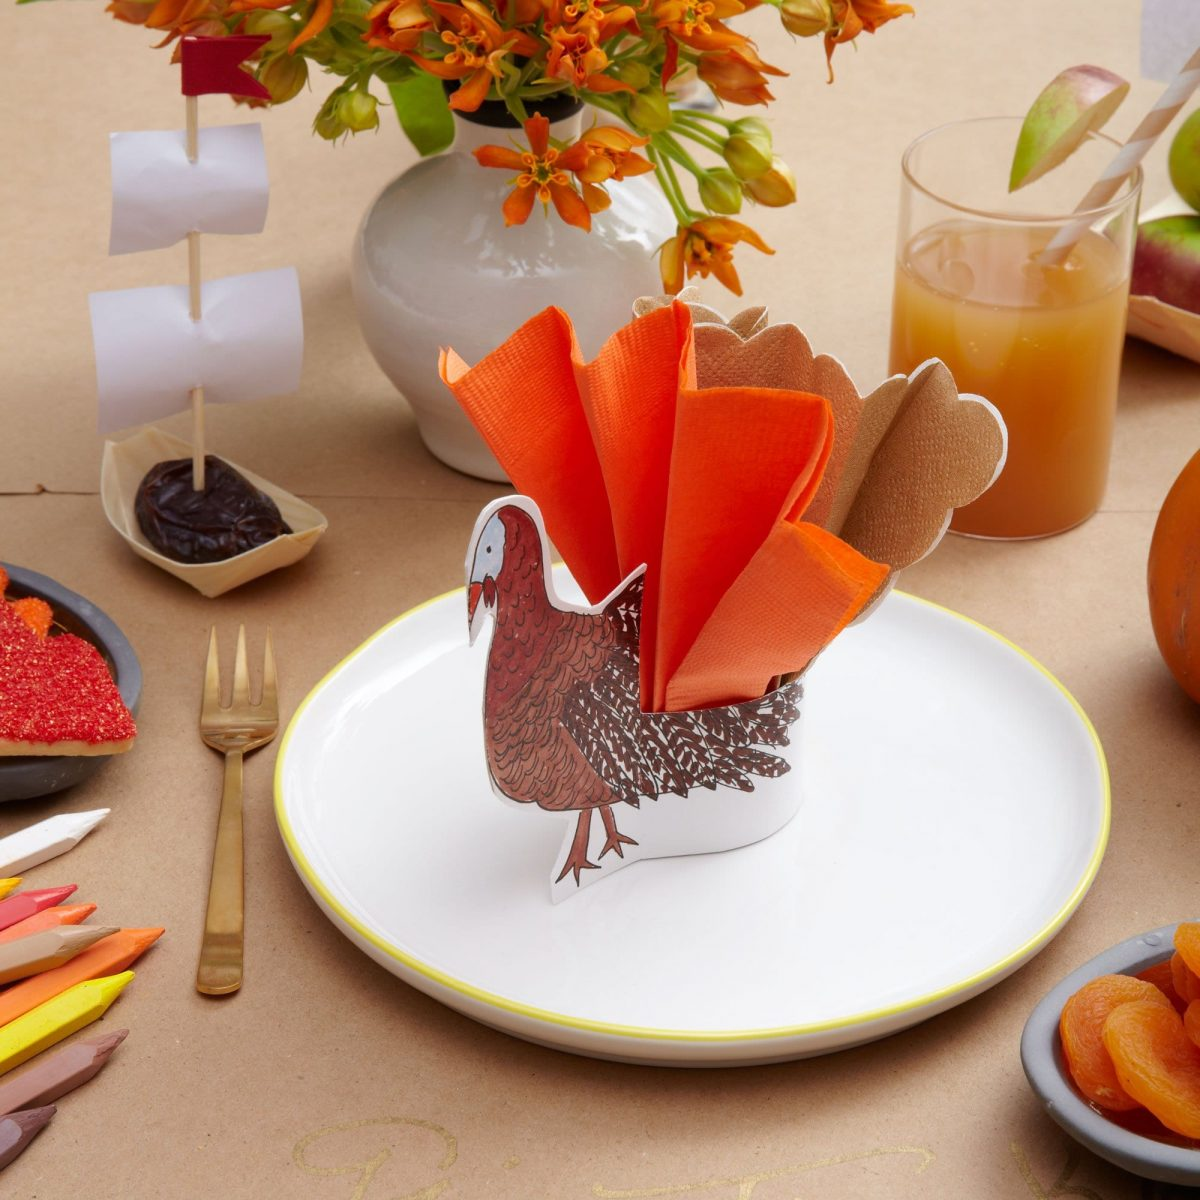 Darcy Miller Designs Thanksgiving Kid's Table Thanksgiving, Kids Table, Paper Craft, Coloring, Mayflower, Healthy Snacks, Turkey Craft, Apple Craft, Crab Apples